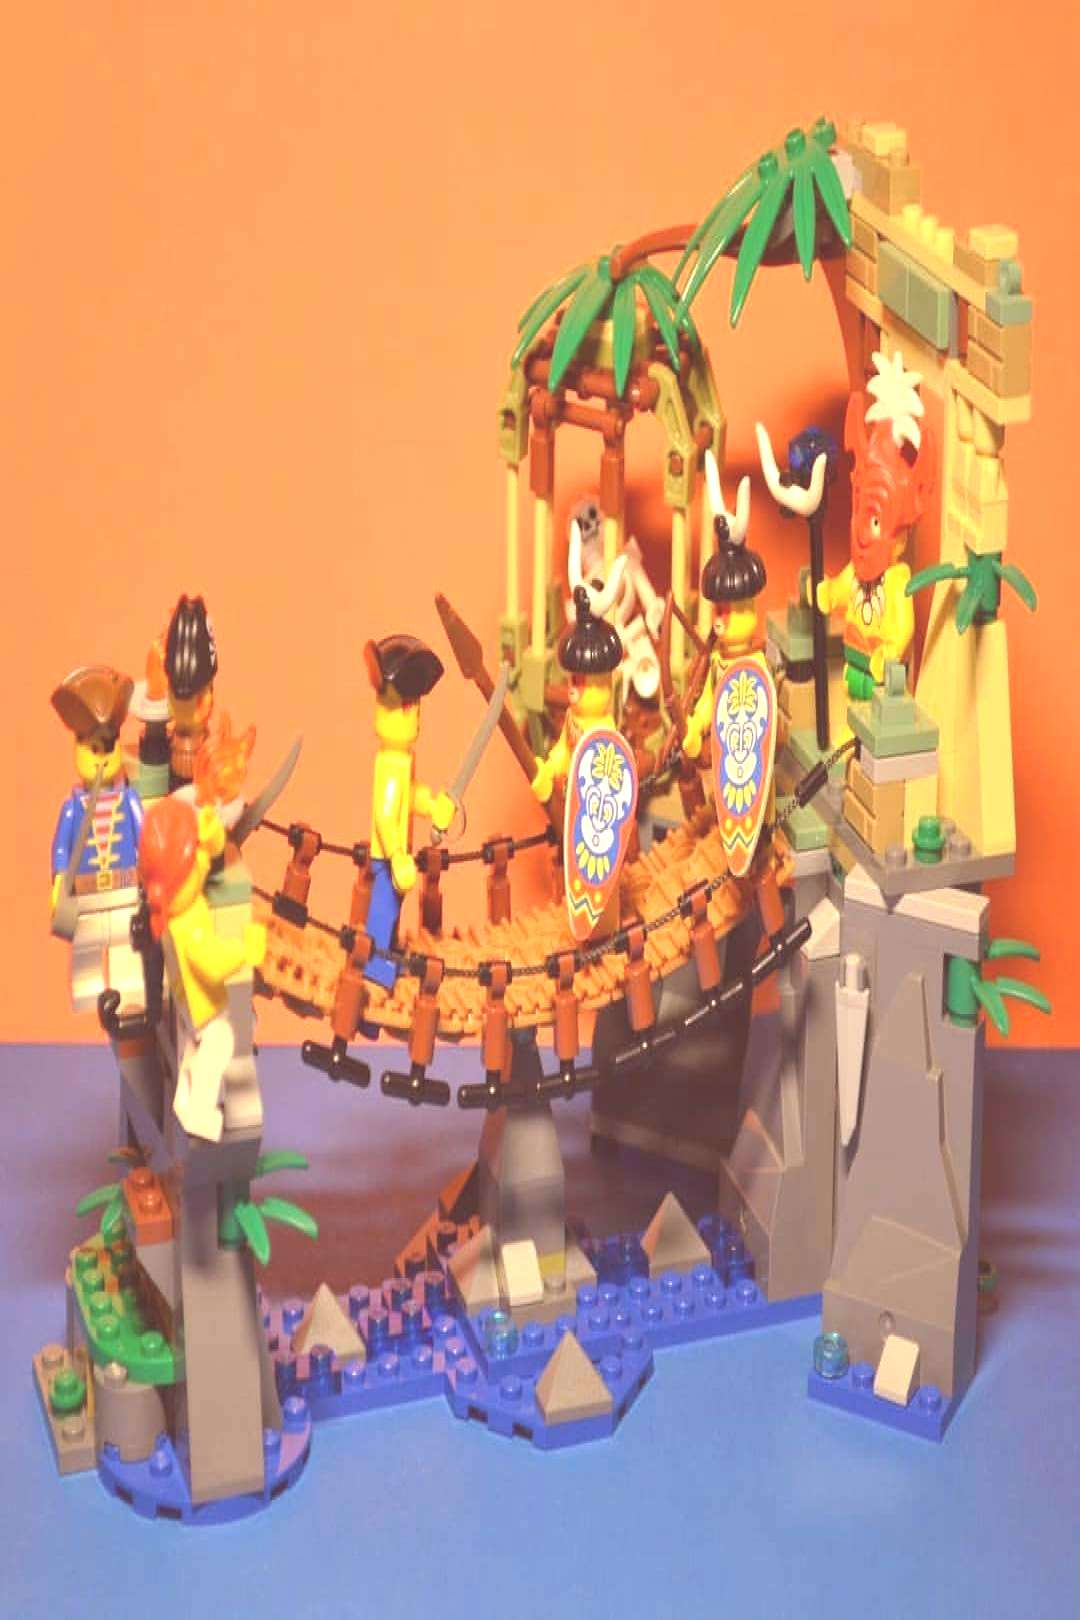 Photo by LEGO collector and builder on March 14, 2020.You can find Pirates and more on our website.